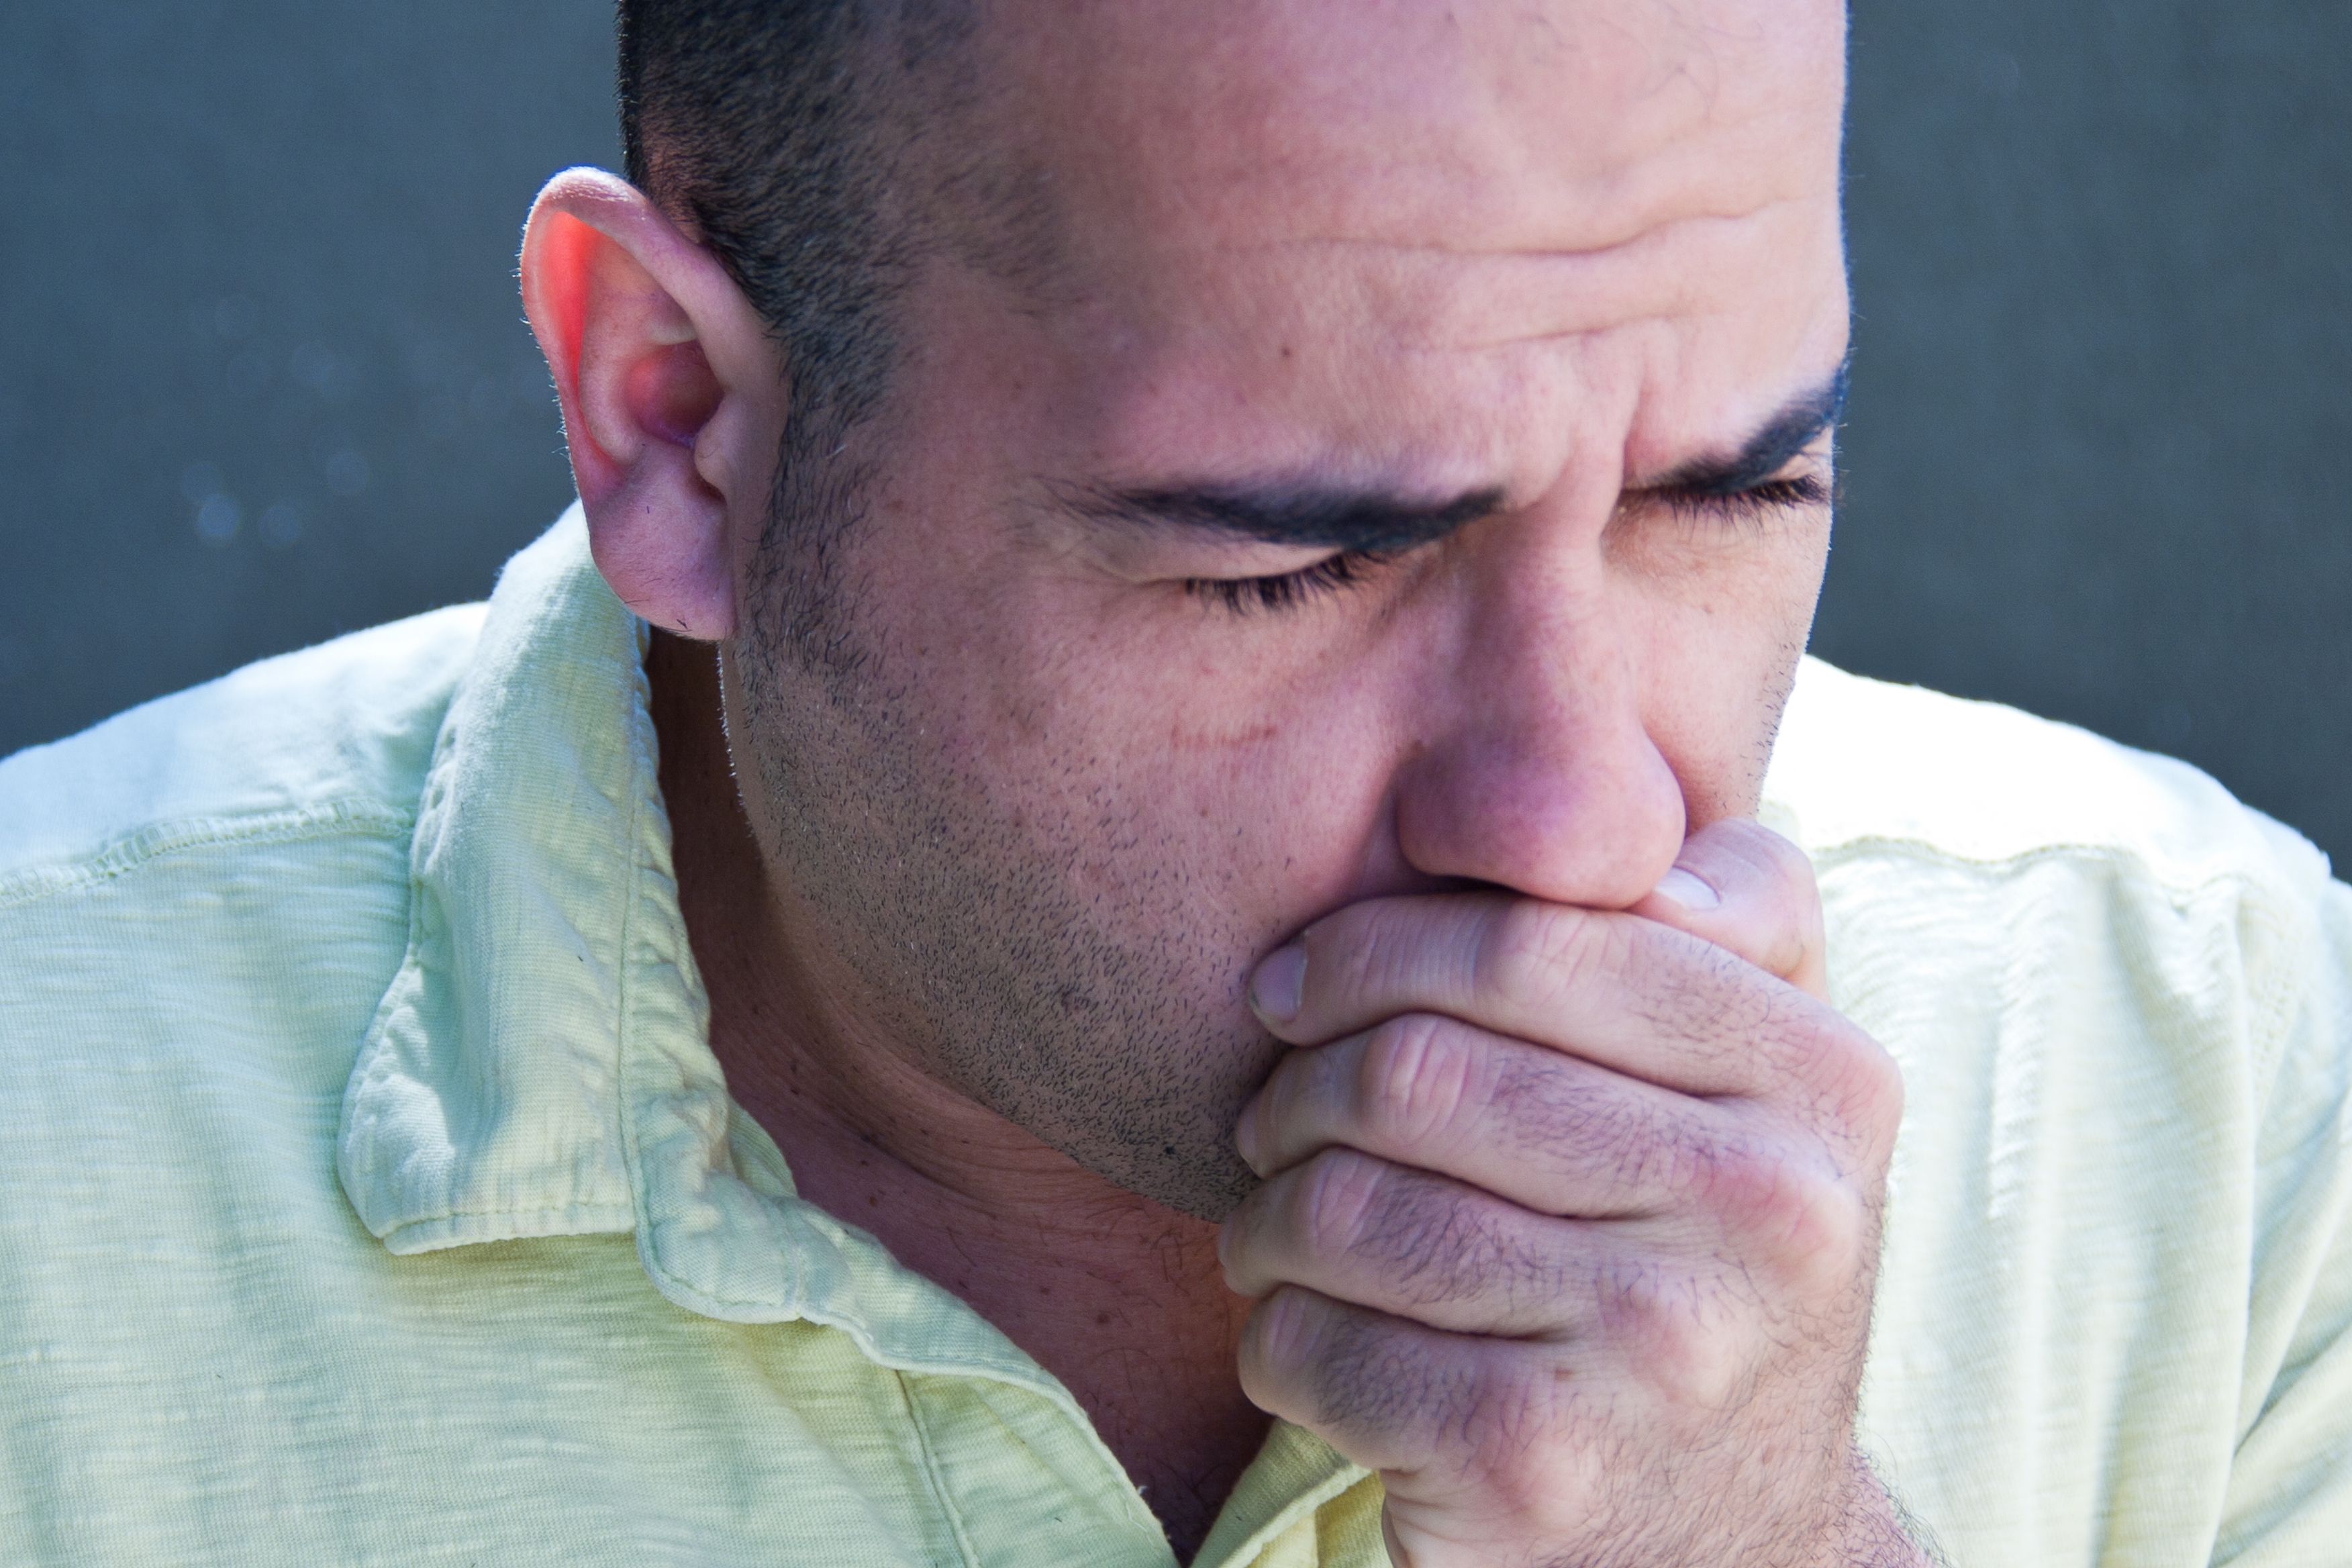 Reasons for Coughing Up Phlegm